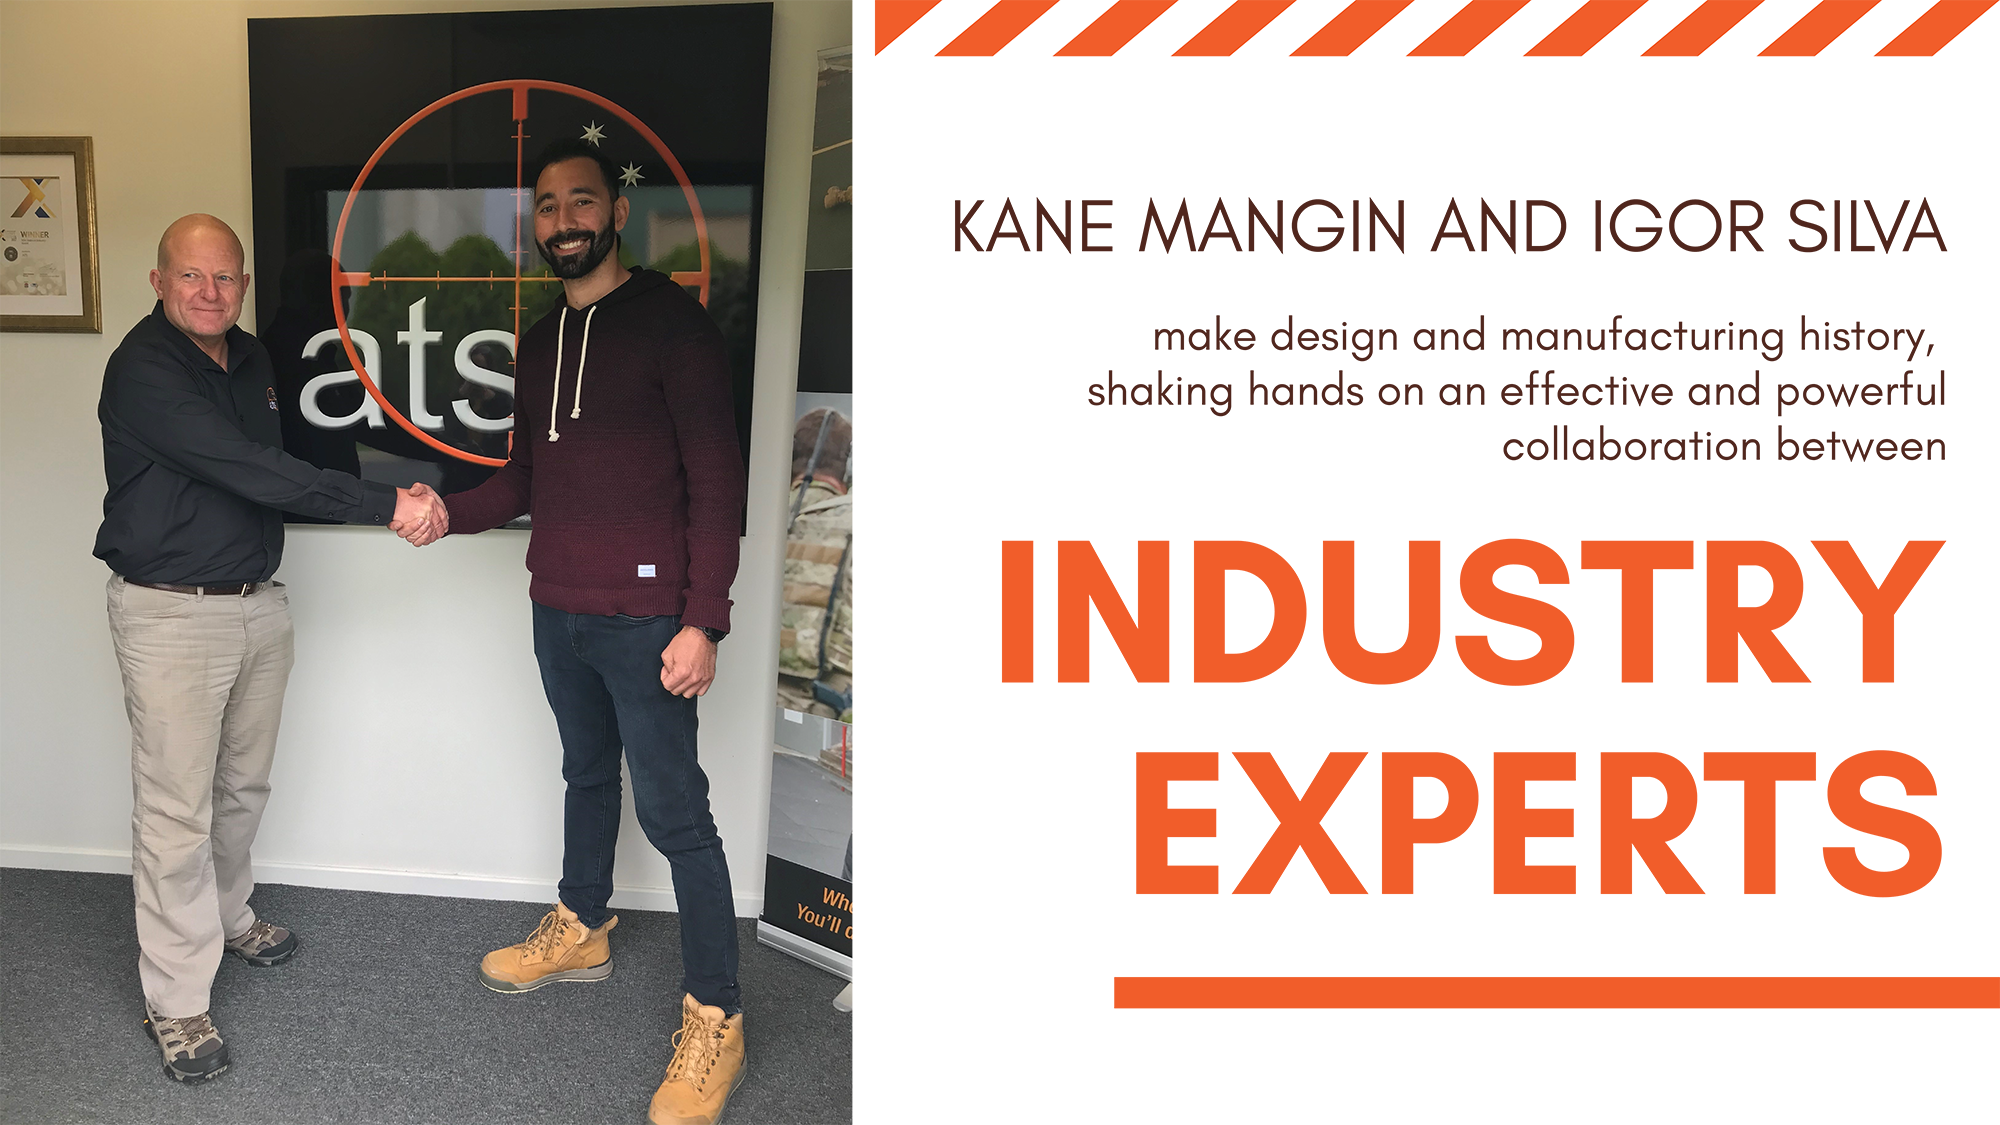 Igor Silva and Kane Mangin handshake, text: Kane Mangin and Igor Silva make design and manufacturing history shaking hands on the efficient collaboration between industry experts.